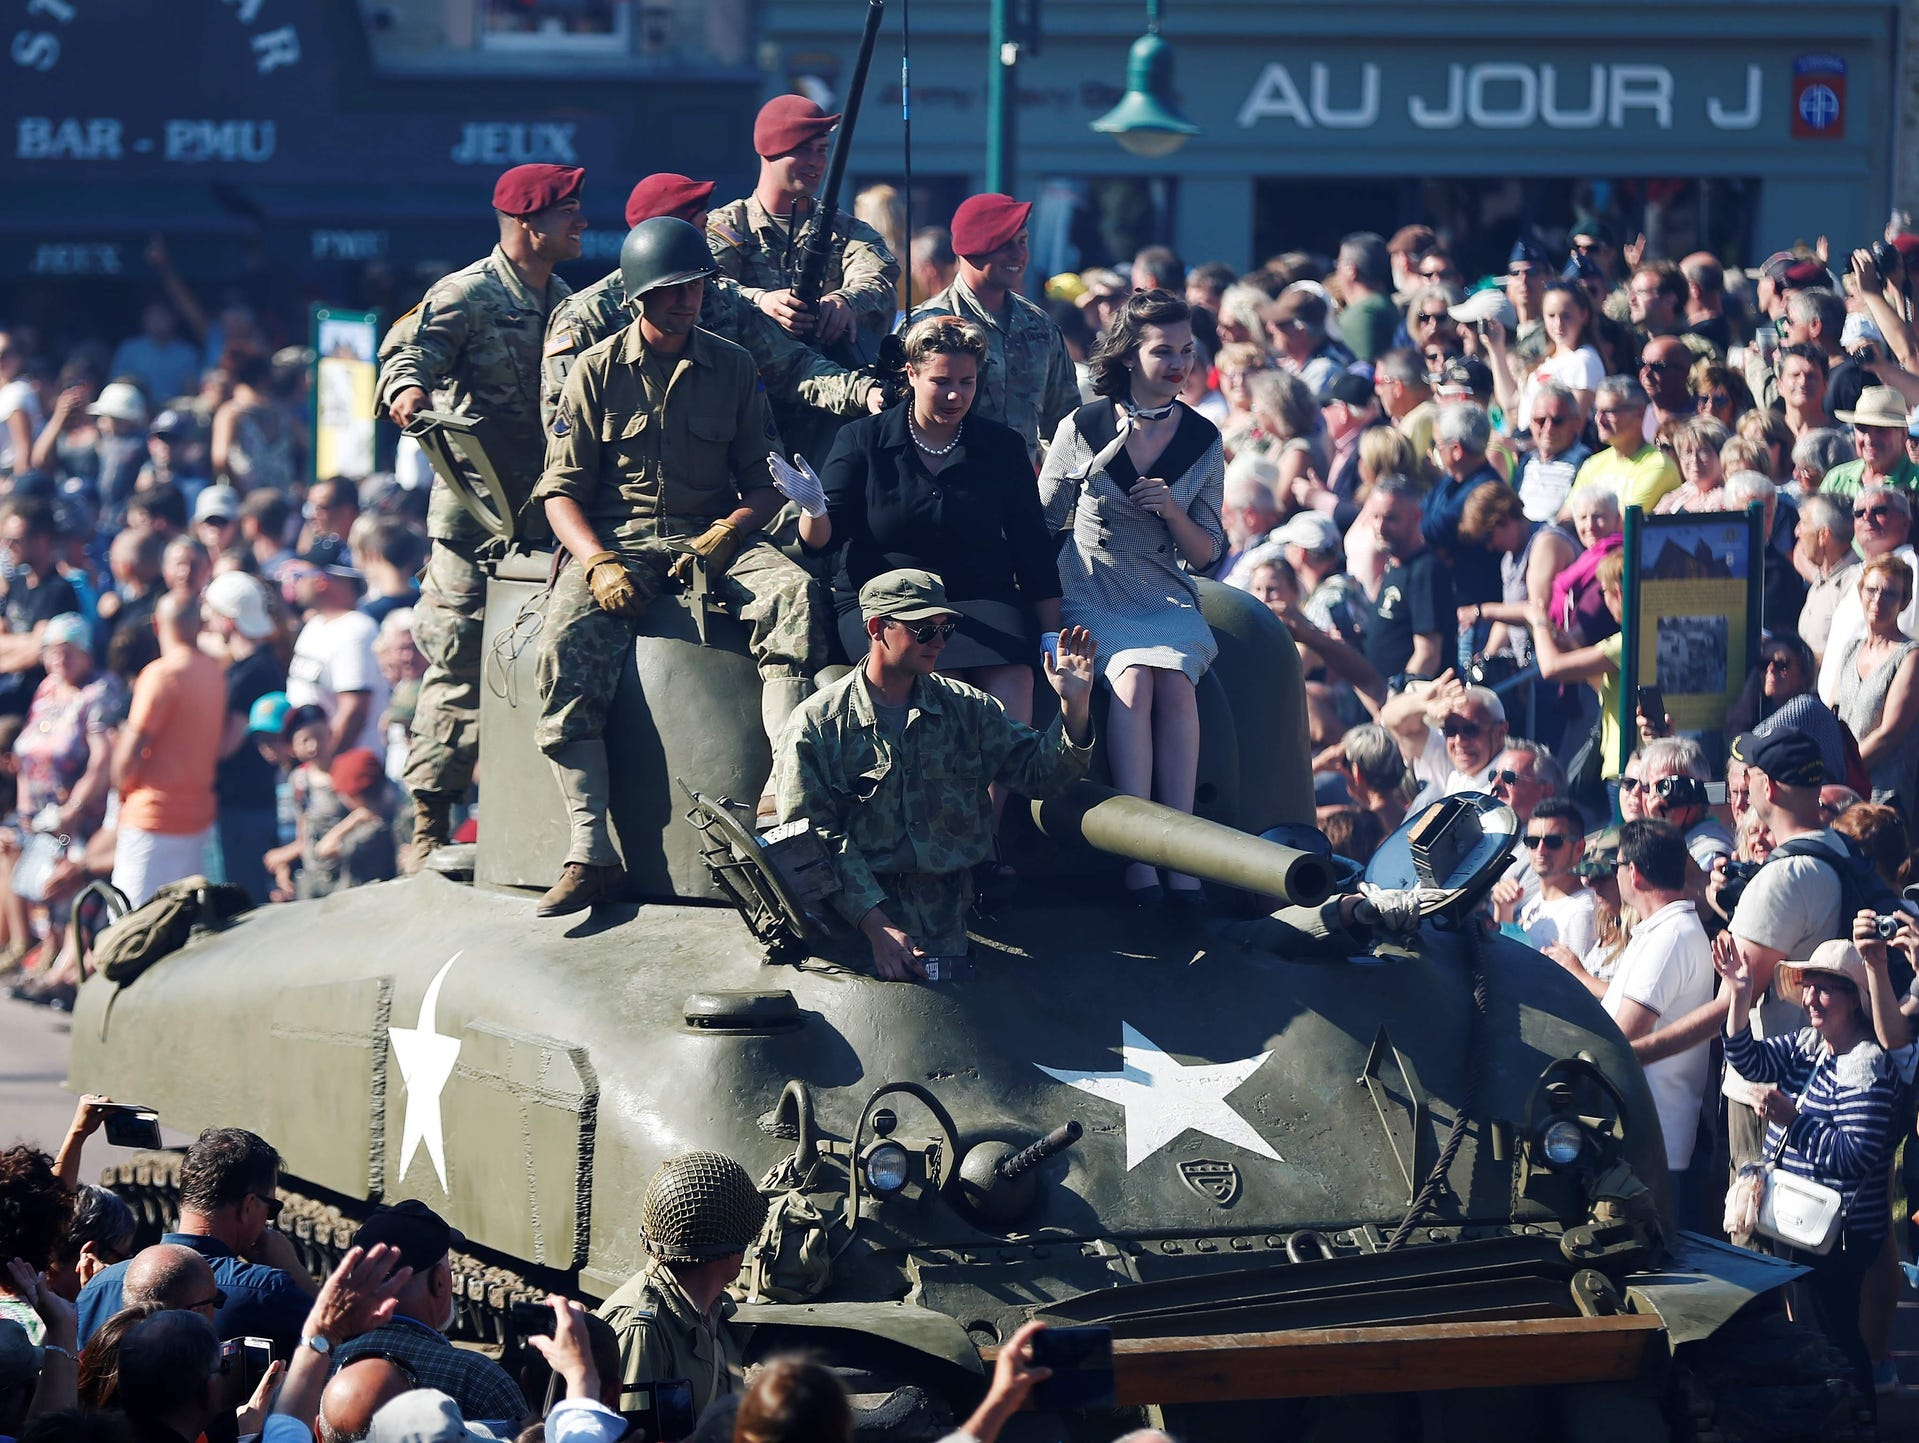 World War II enthusiasts sit on a tank during a parade